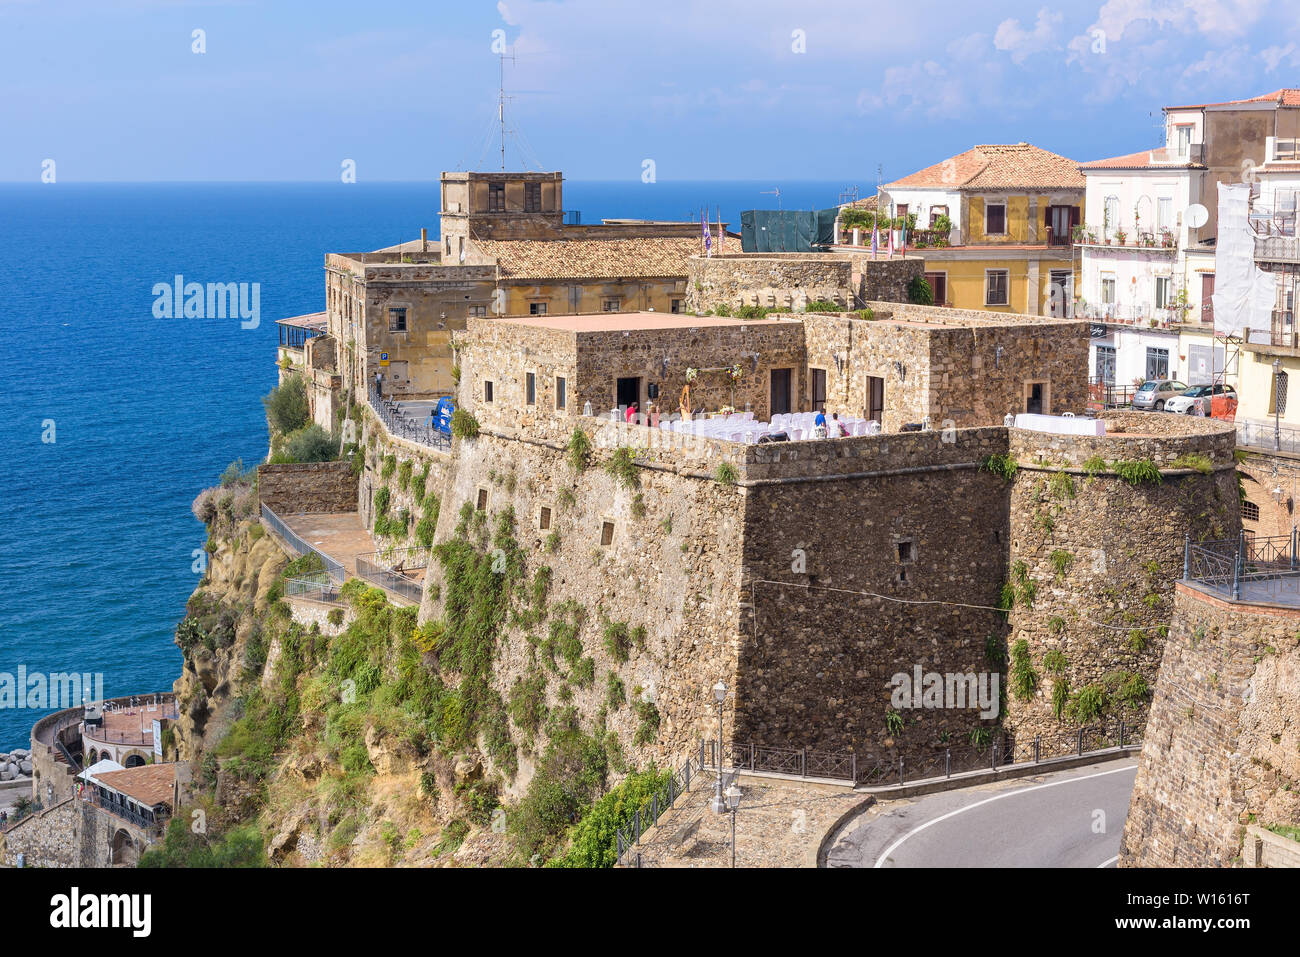 Pizzo, Italy - September 10, 2016: View of Castello Murat, built by the Aragonese in the 15th century, in which Joachim Murat, ex-king of Naples, was Stock Photo